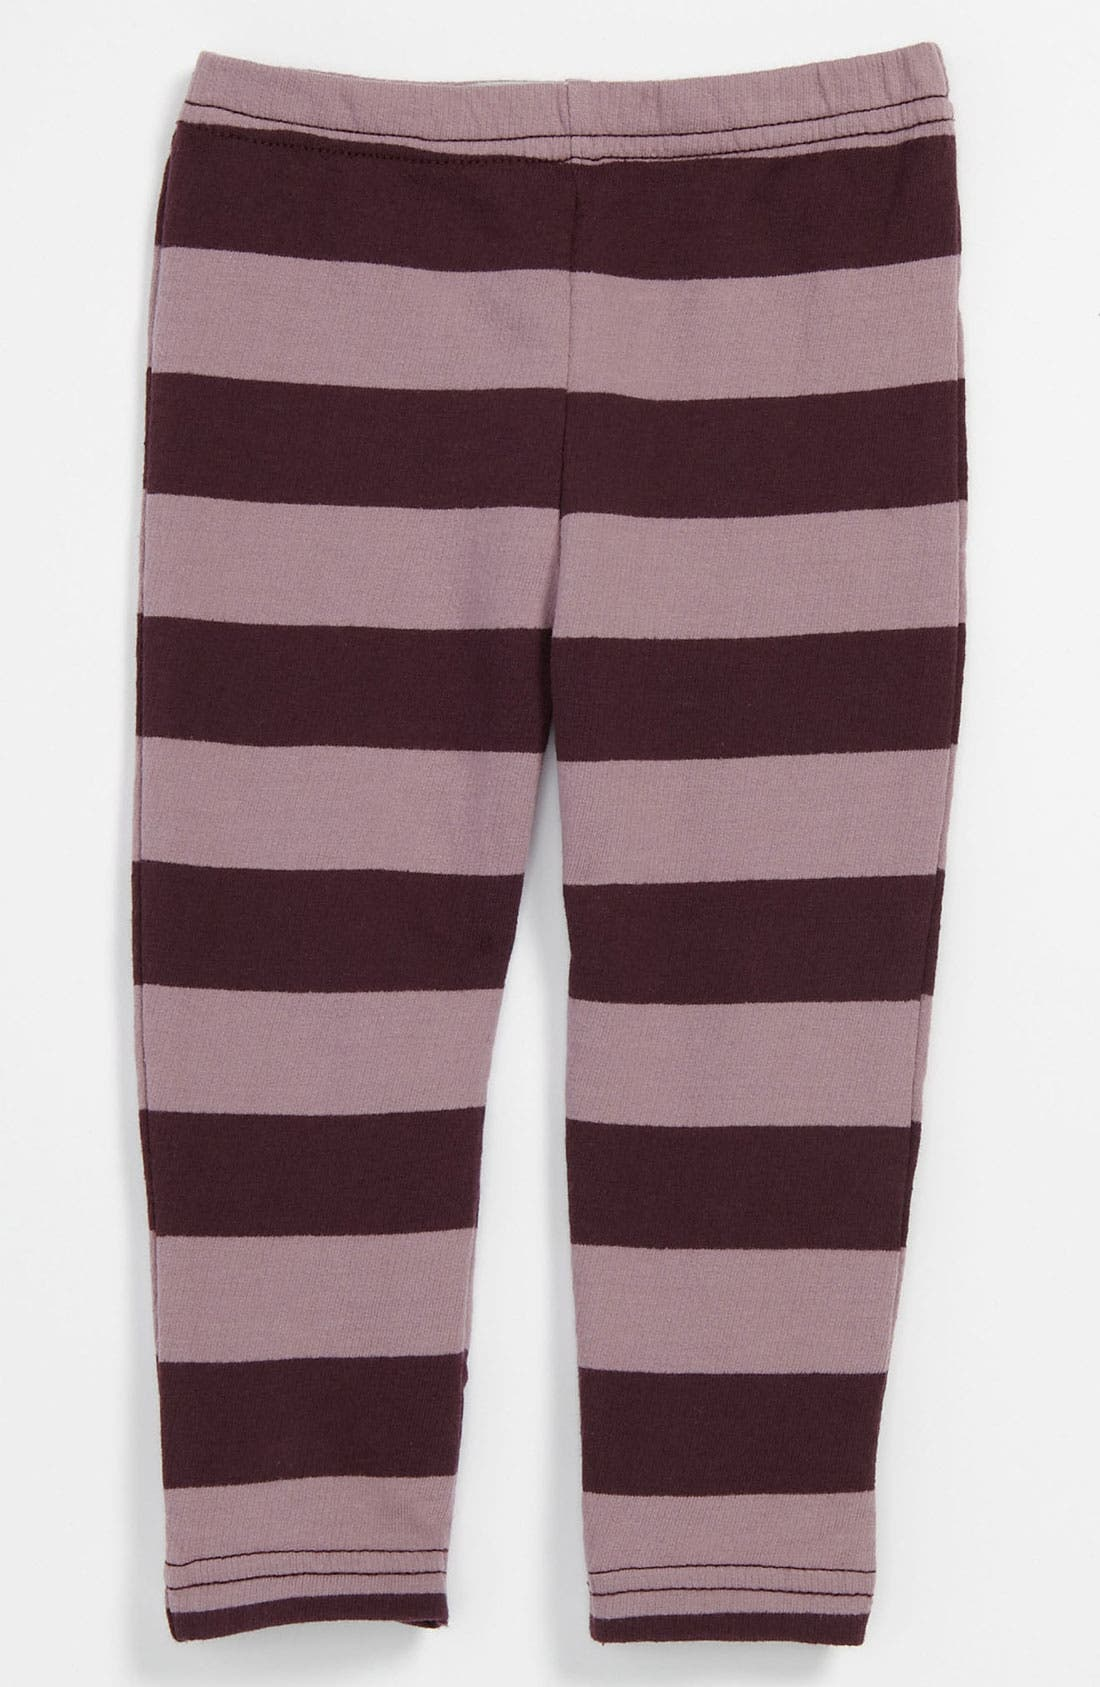 Alternate Image 1 Selected - Peek 'Tumble' Leggings (Infant)